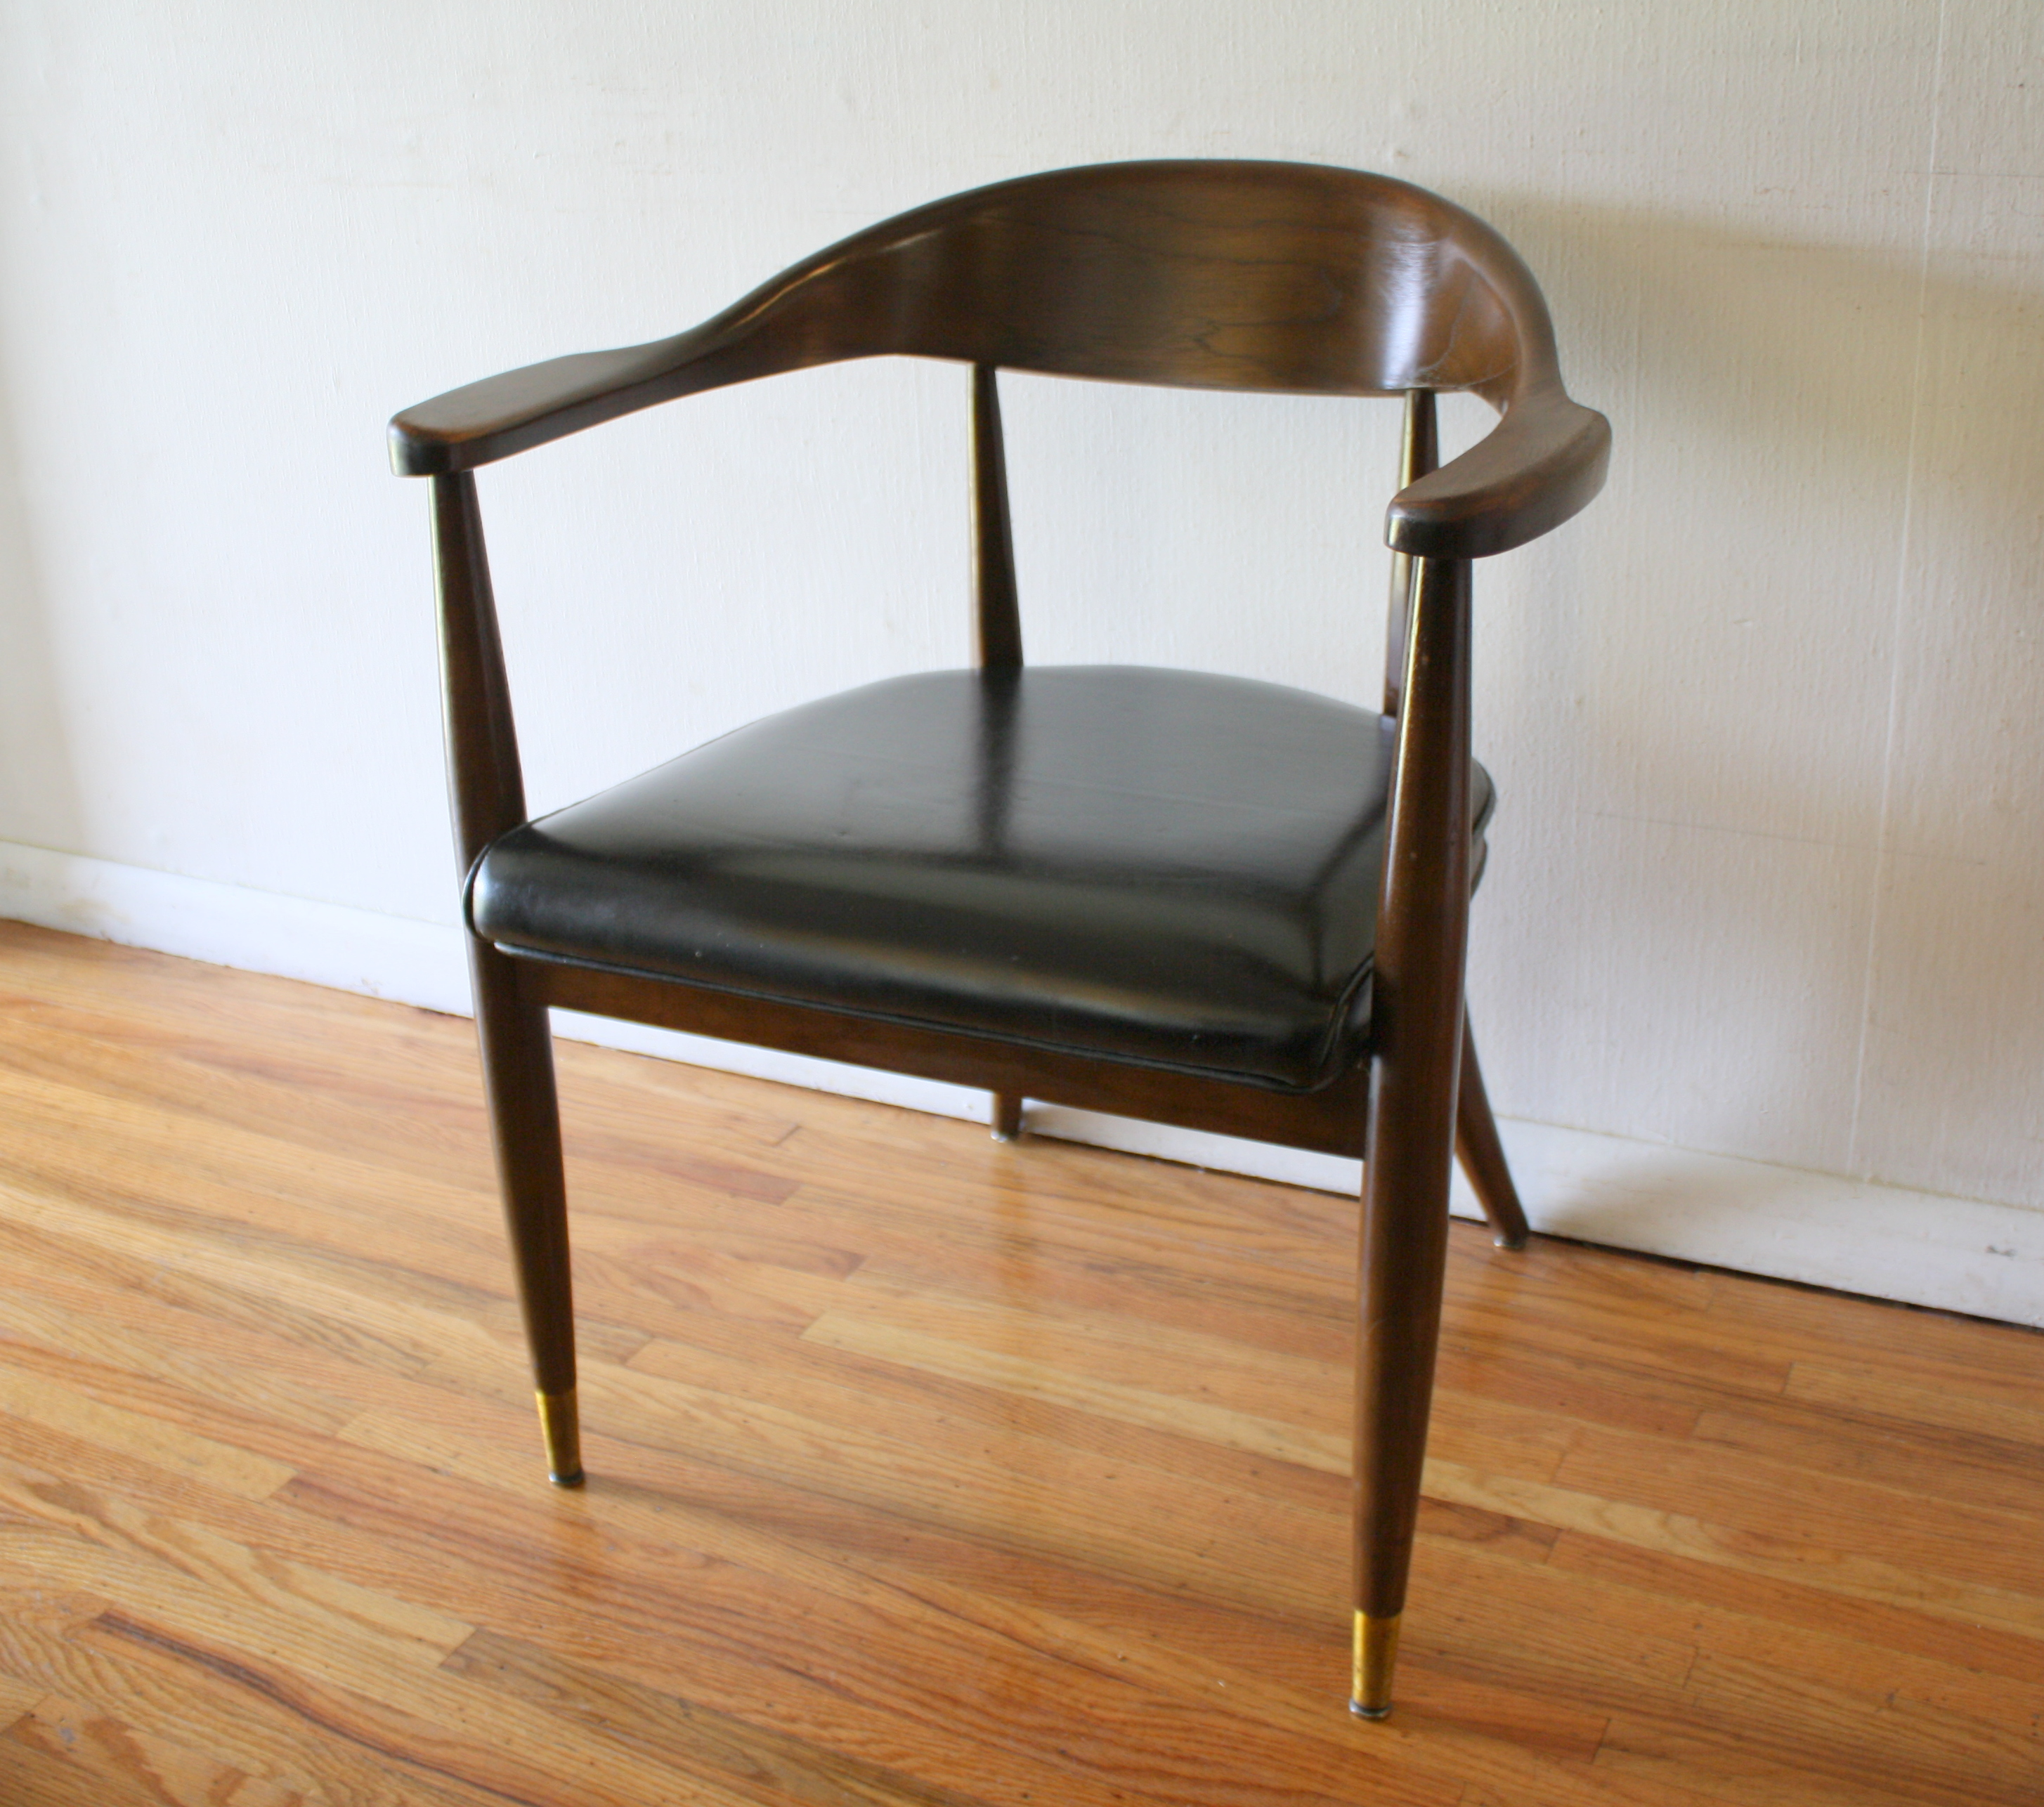 Boling chair black naugahyde seat 1